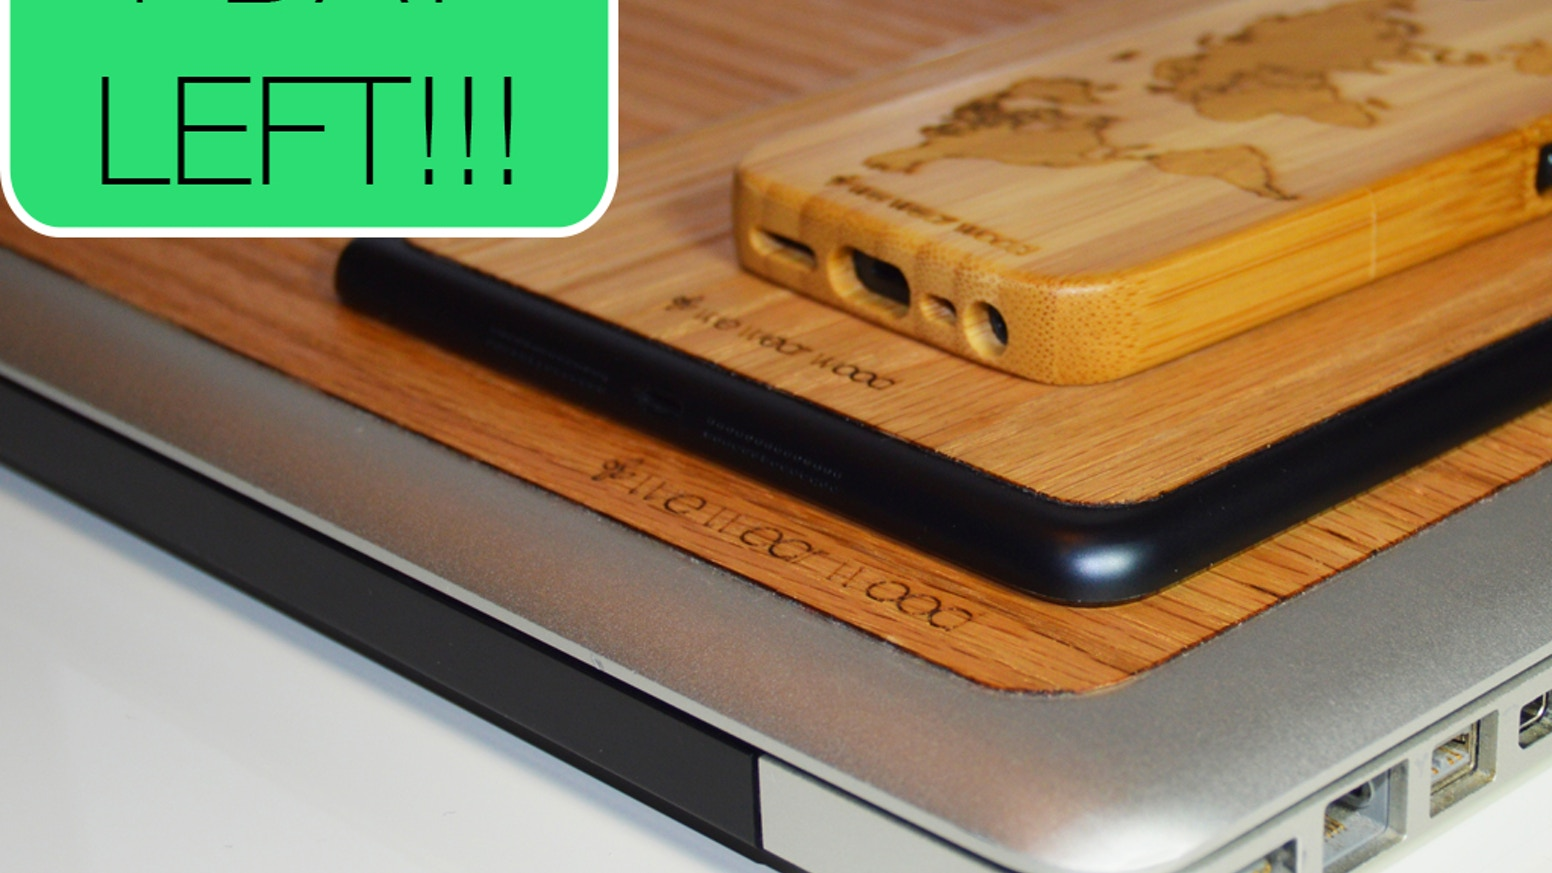 Personalize your Apple devices with a creative, eye-catching, natural wood cover and make your tech truly unique from the rest.